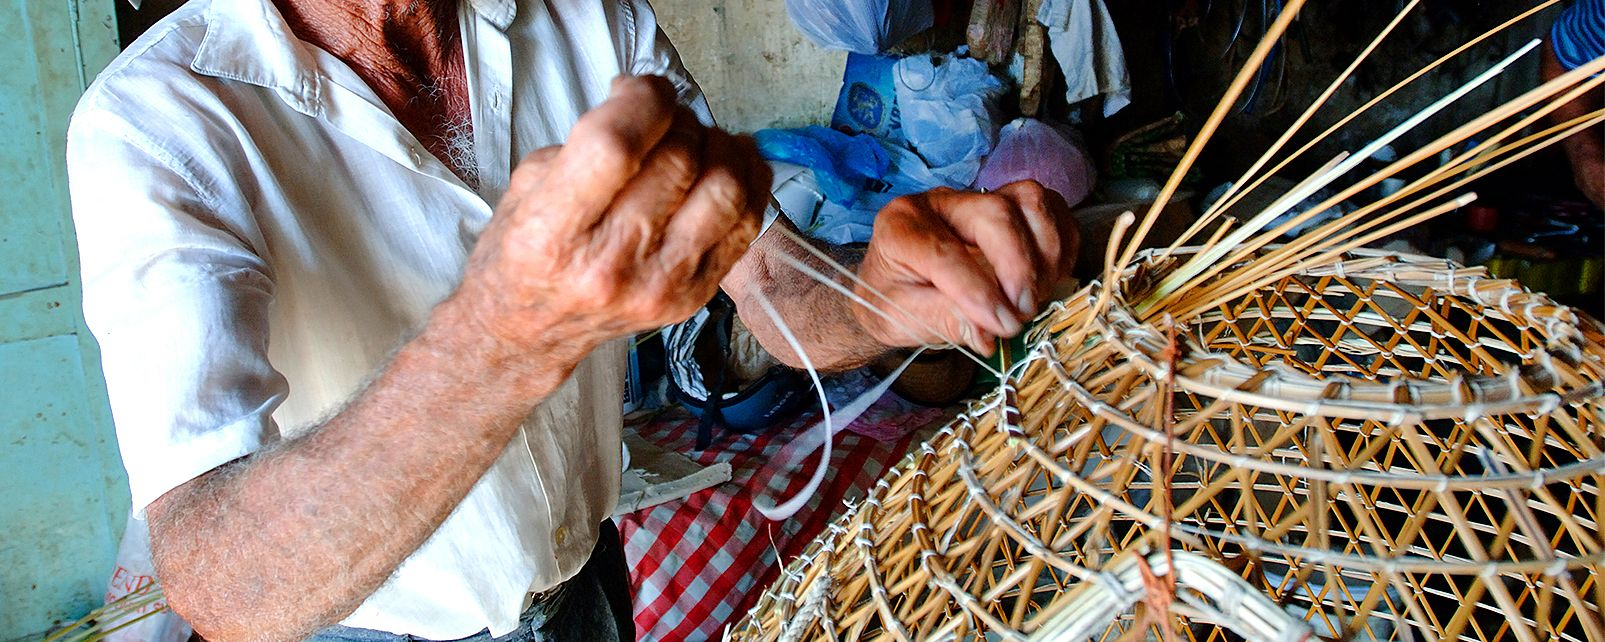 Making fishing equipment, The manufacturing of fishing equipment, Traditions, Malta